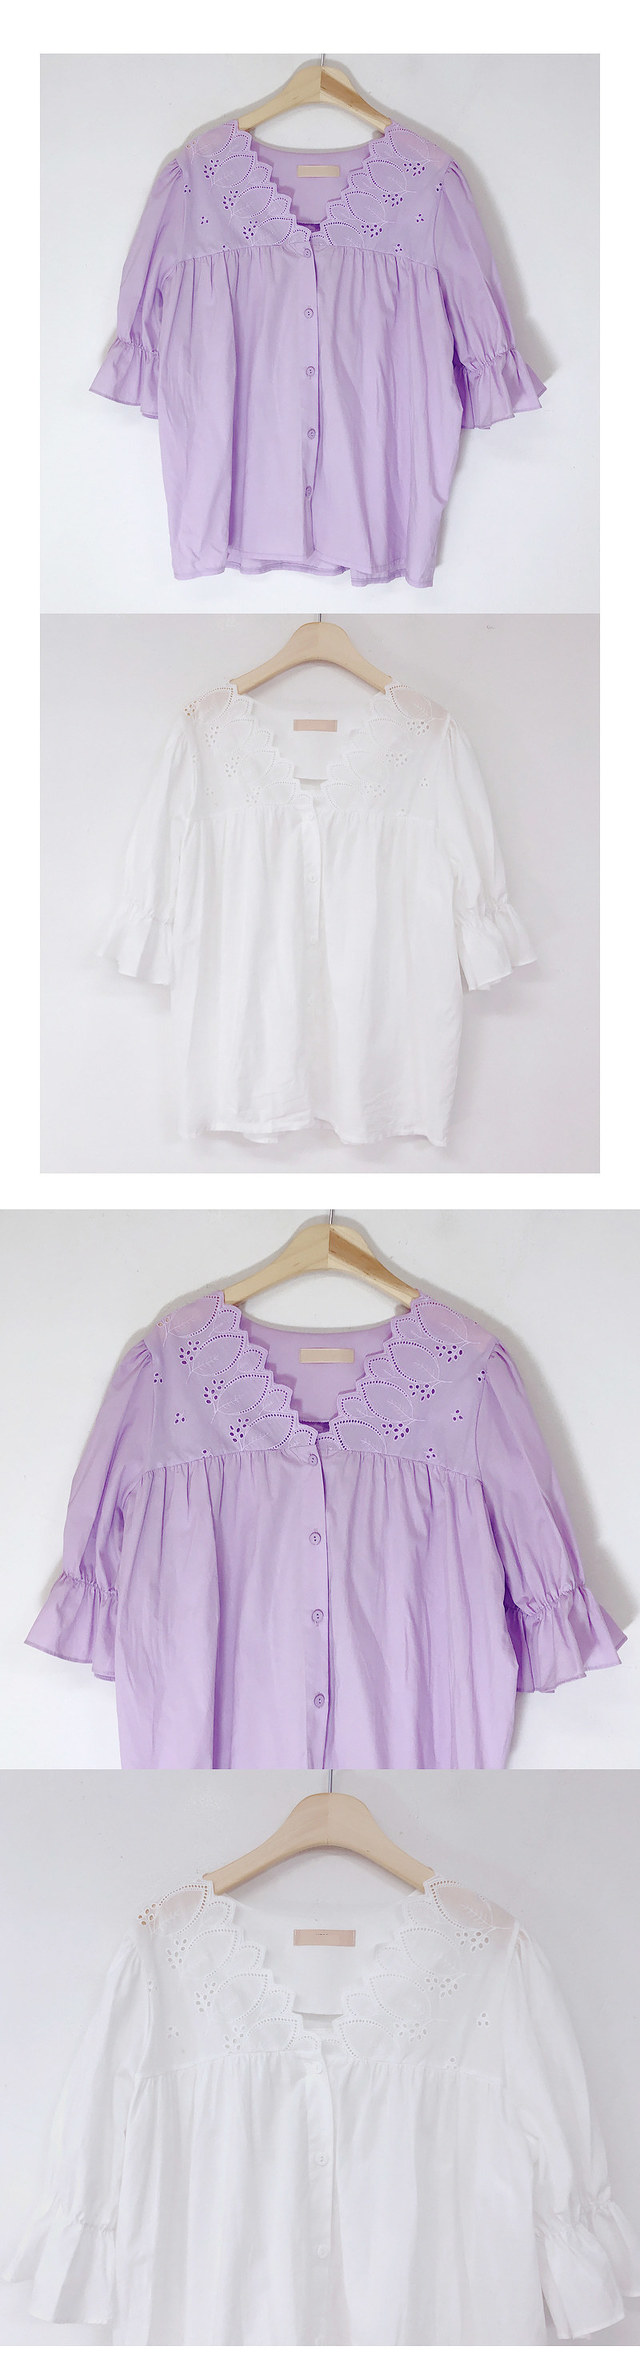 10% off the prize ♥ punching race bl (white, violet)